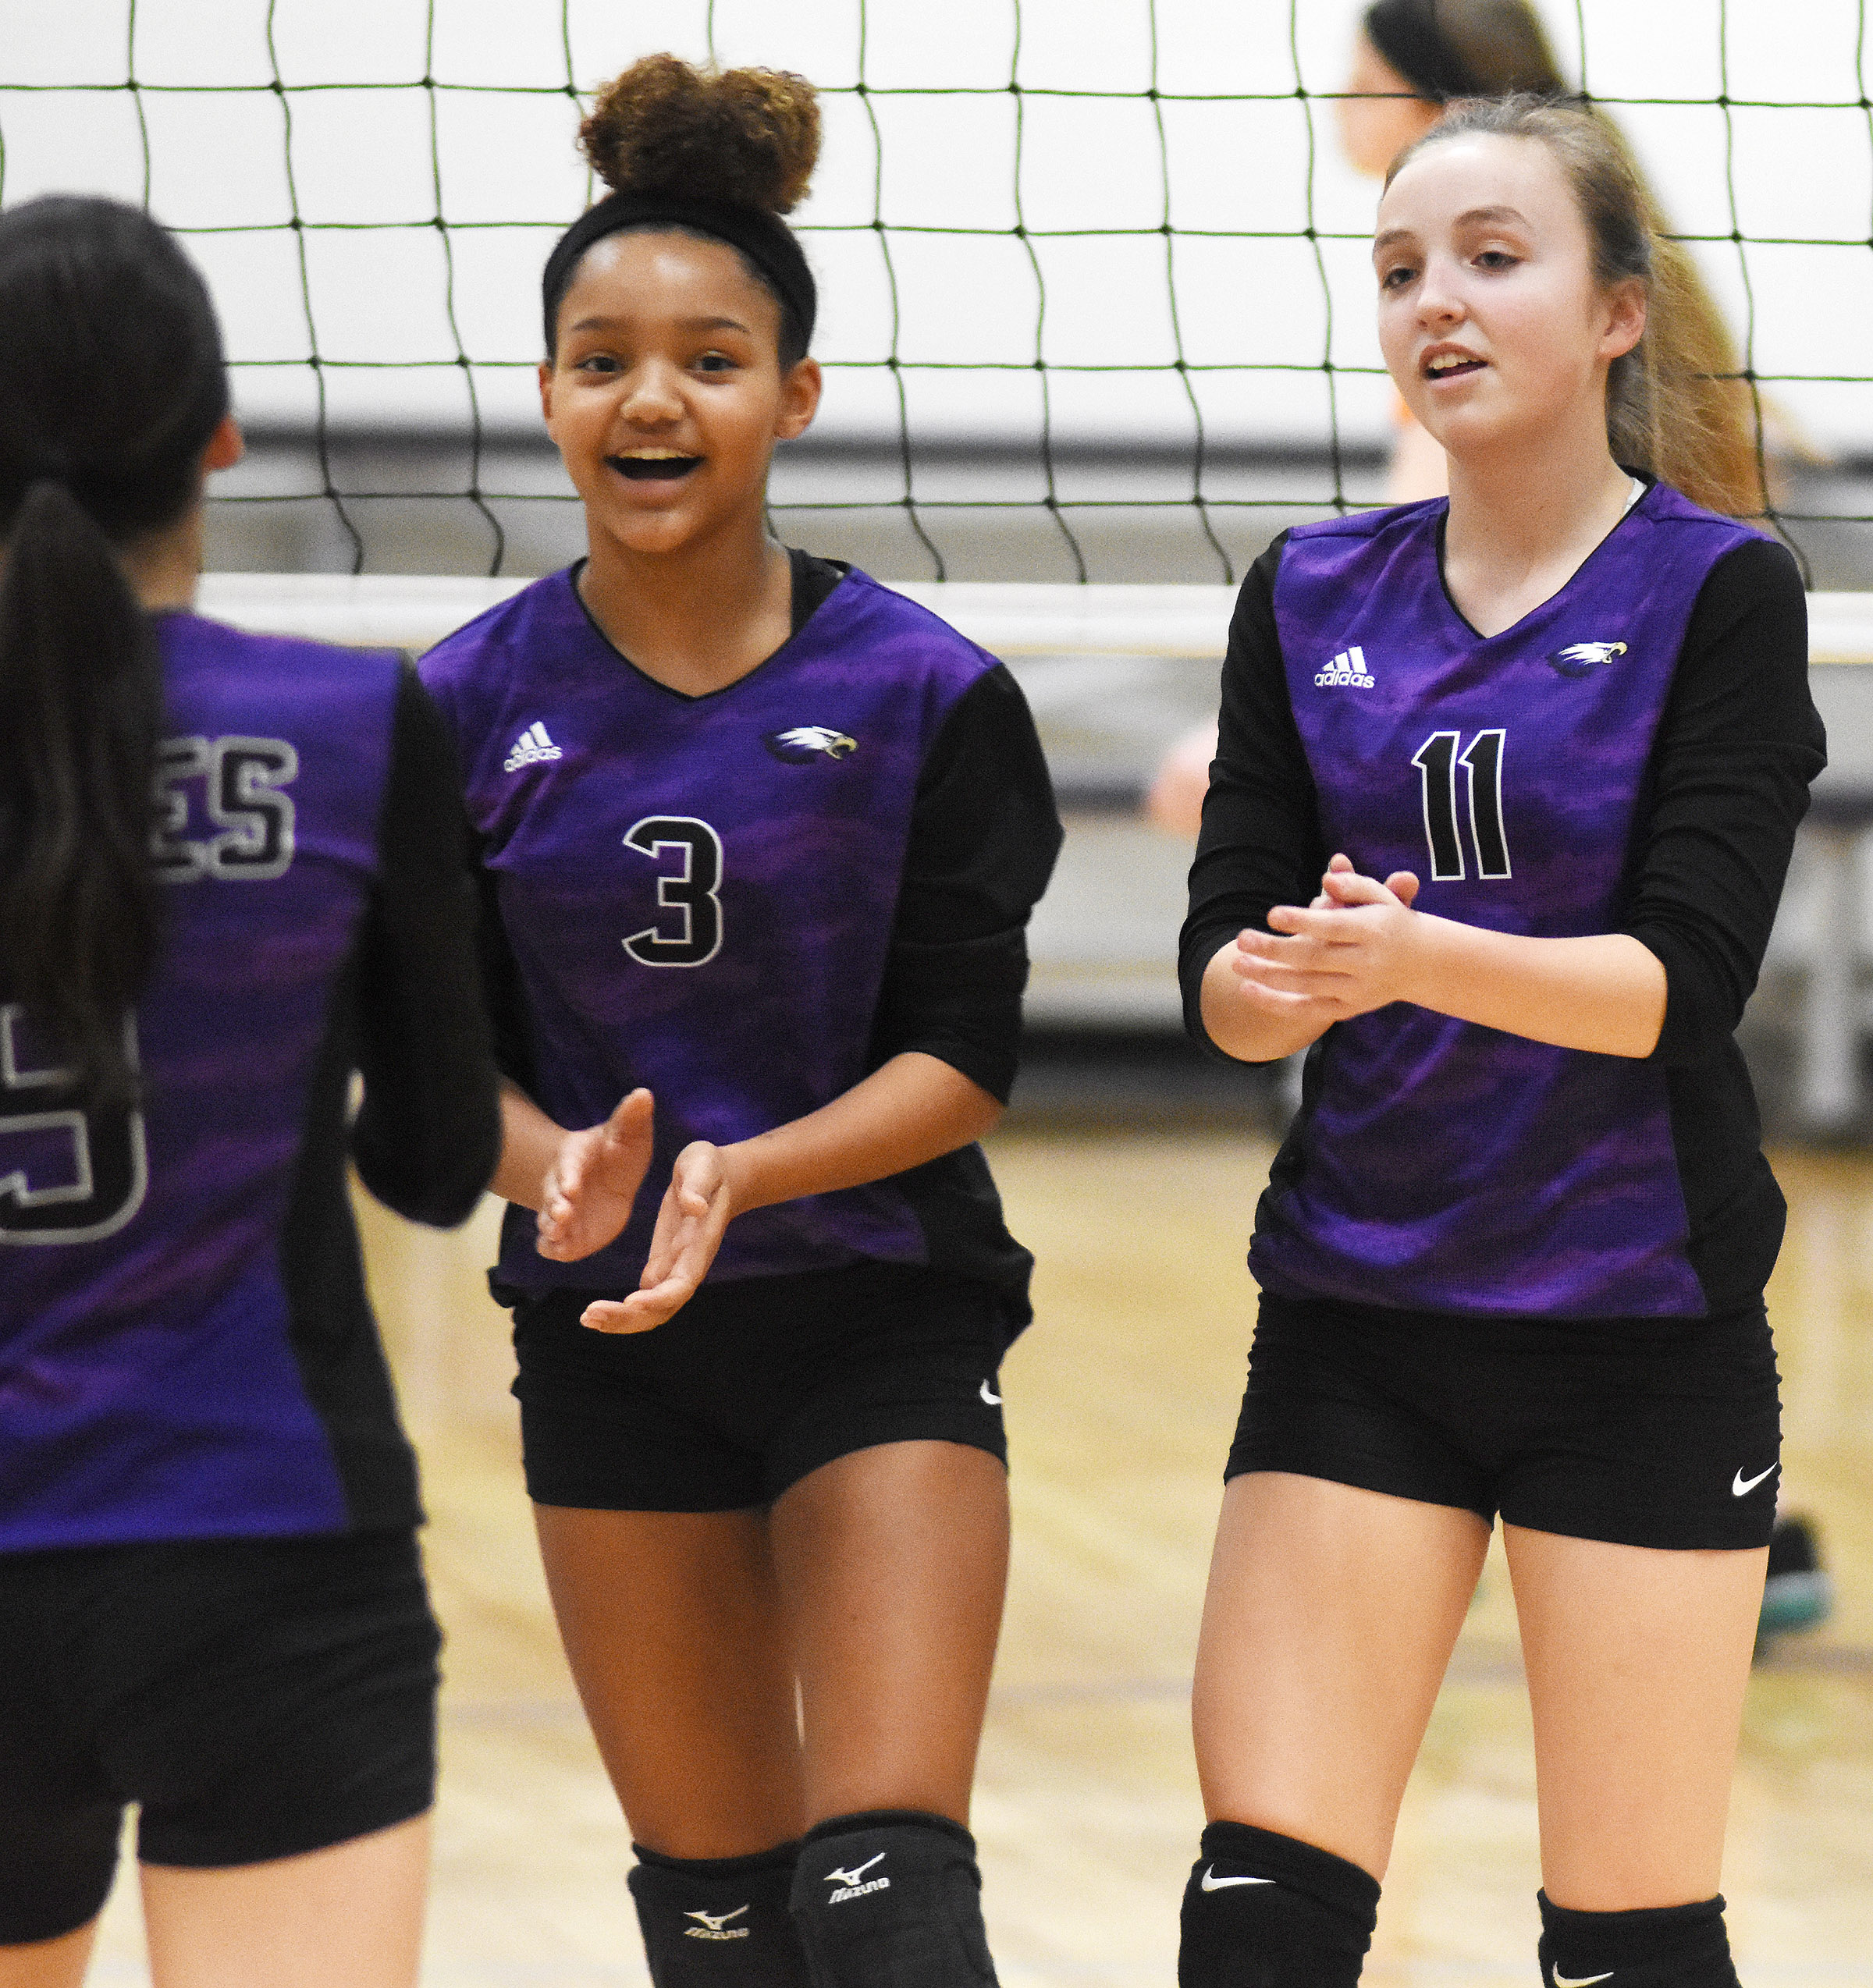 CMS eighth-graders Alexis Thomas, at left, and Lainey Watson cheer after a point.